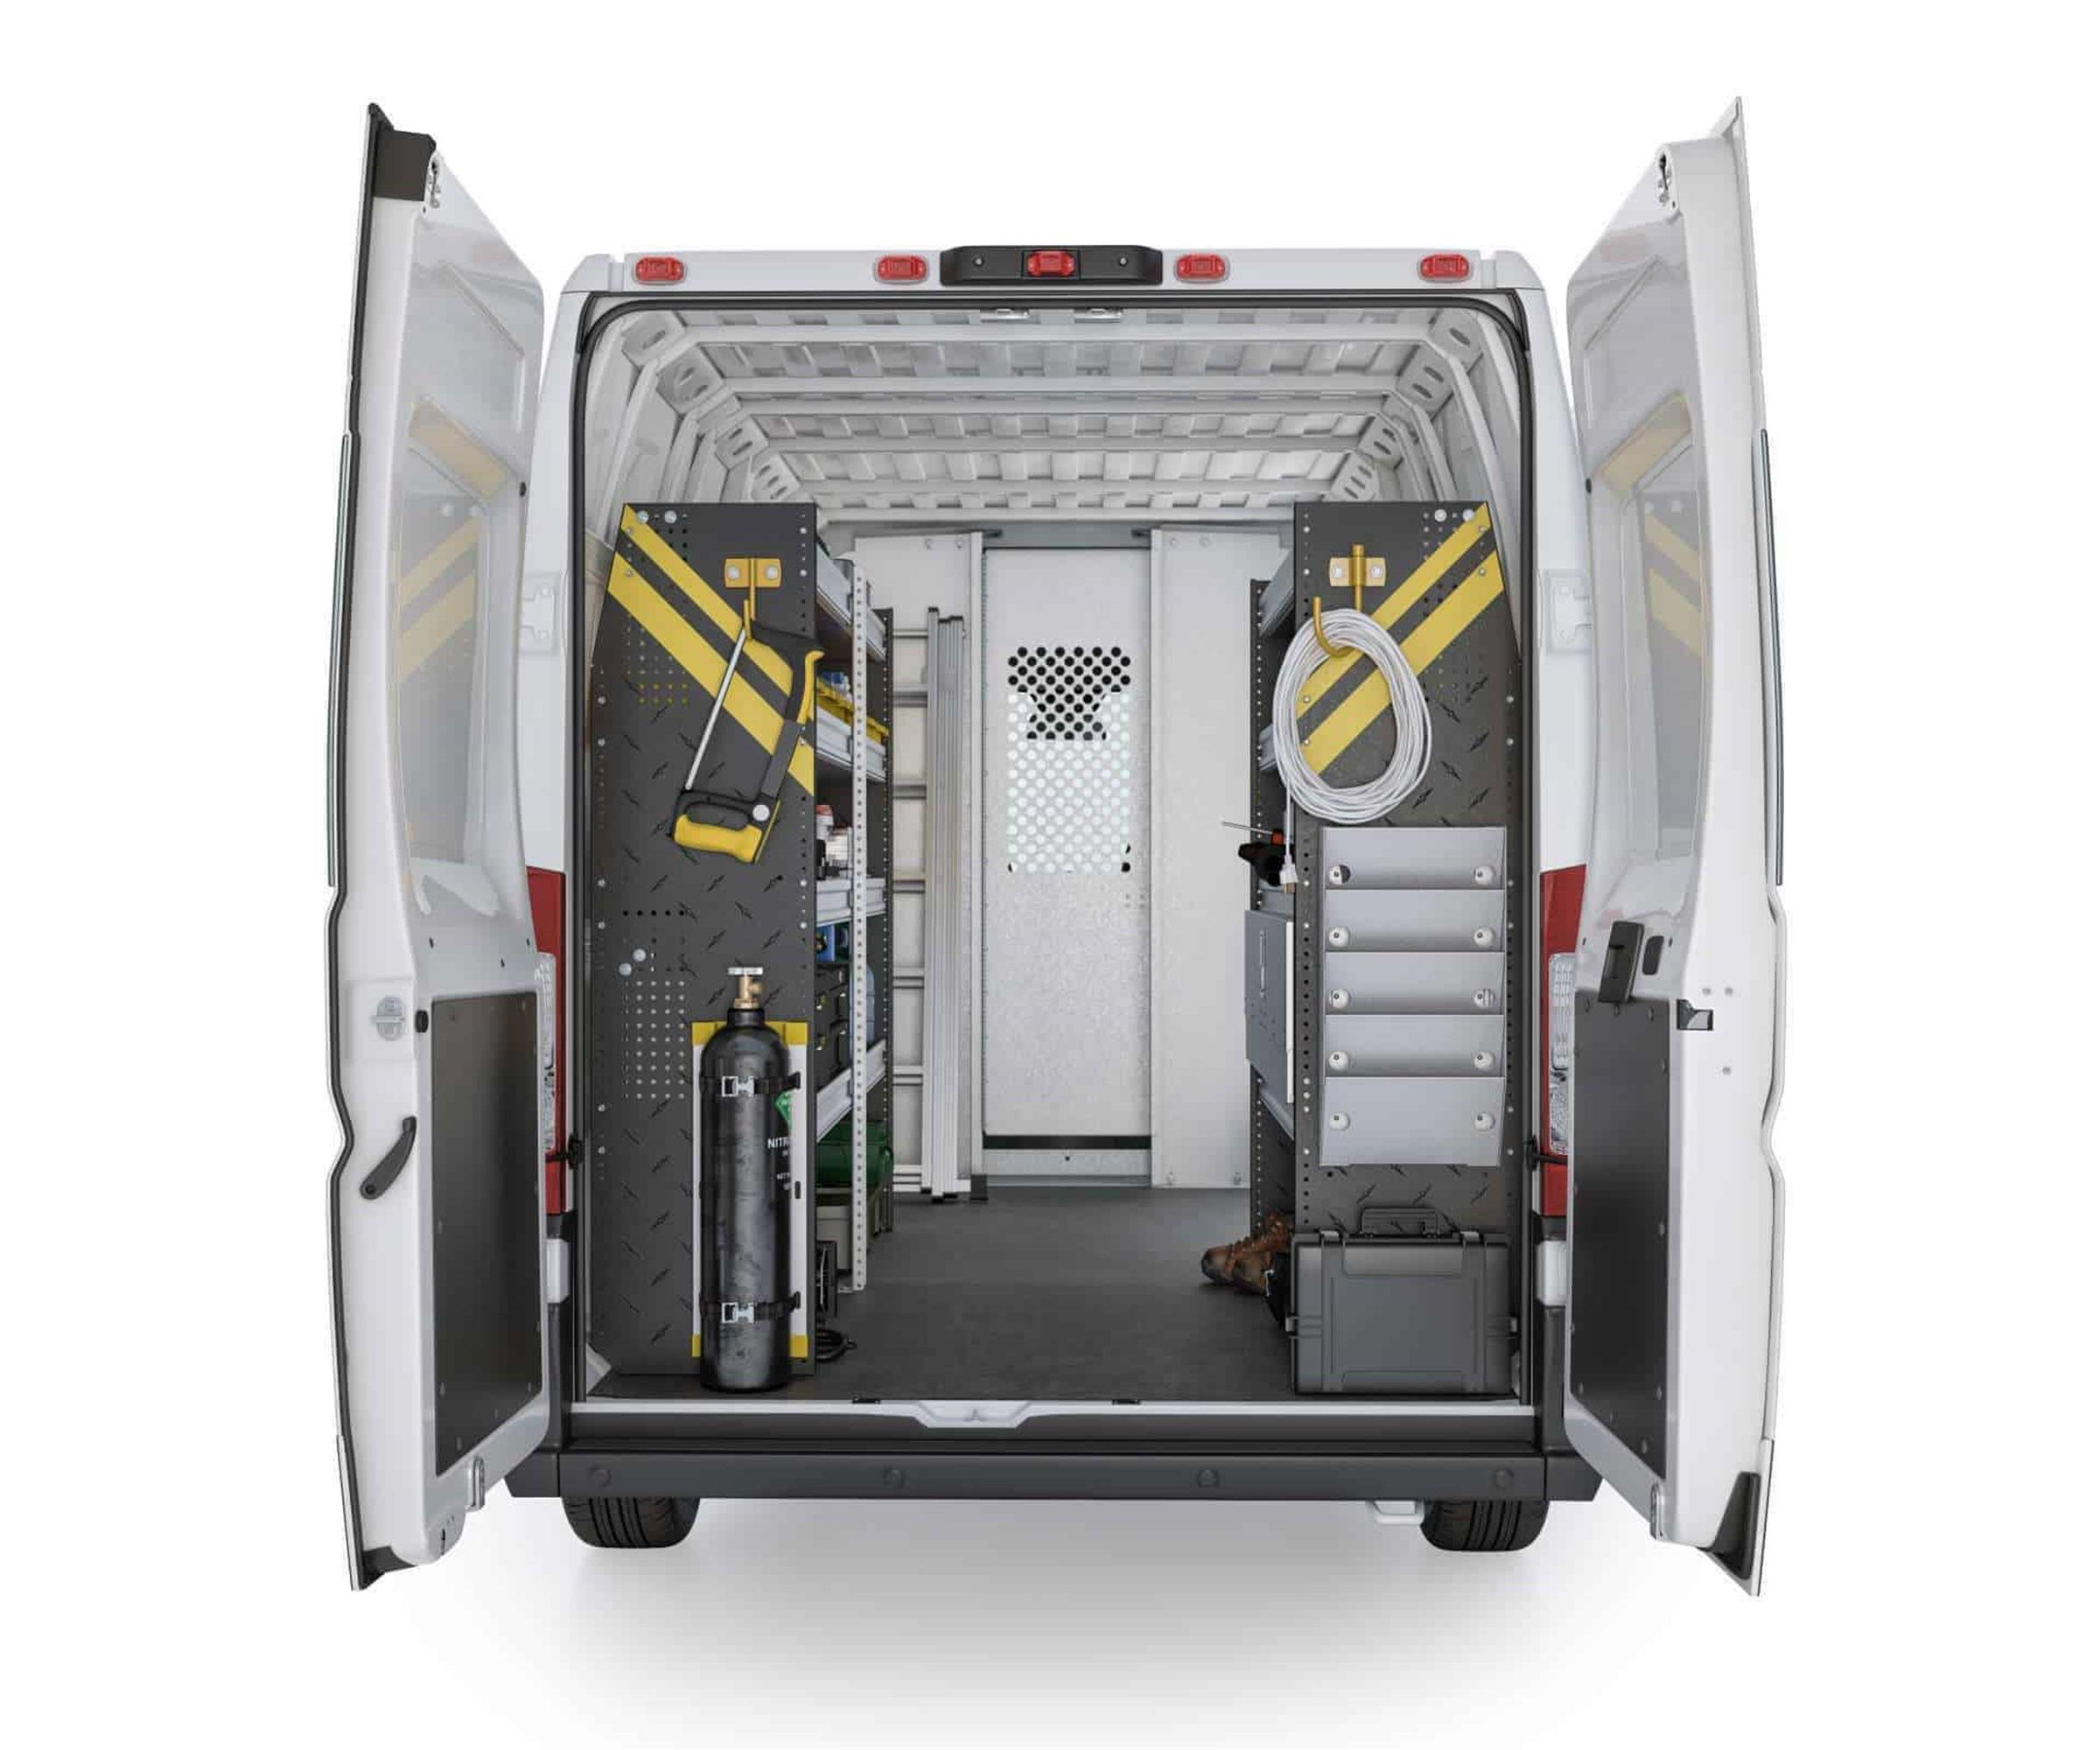 Ram Promaster 12 RPS 12 Rear View